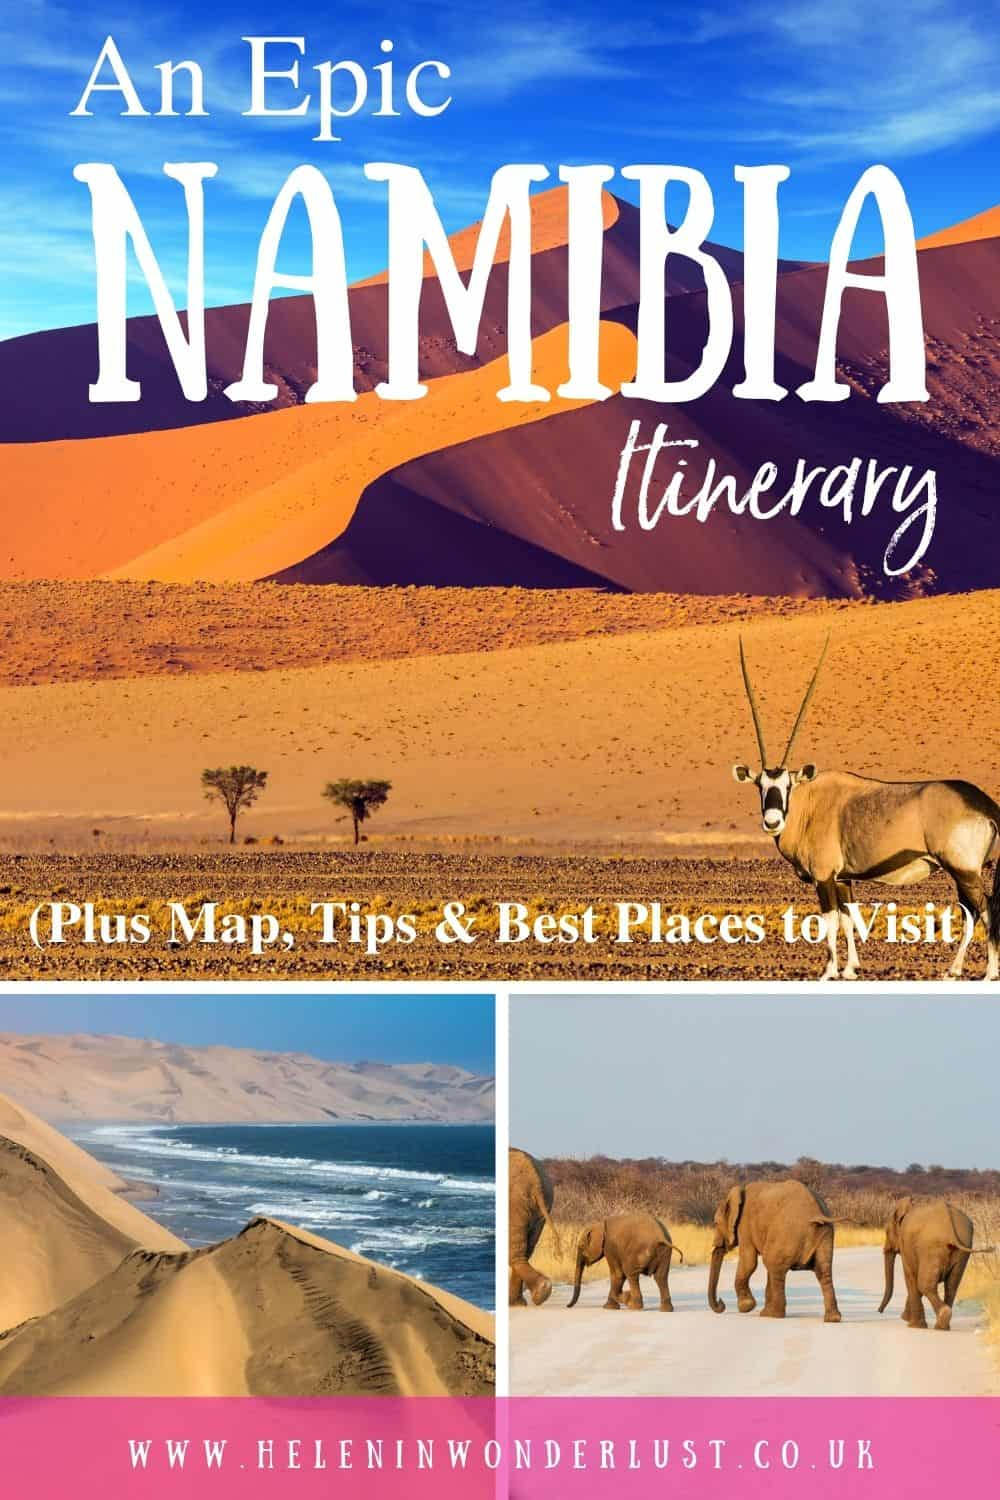 An Epic 2-Week Namibia Itinerary (Plus Map, Tips & Best Places to Visit)